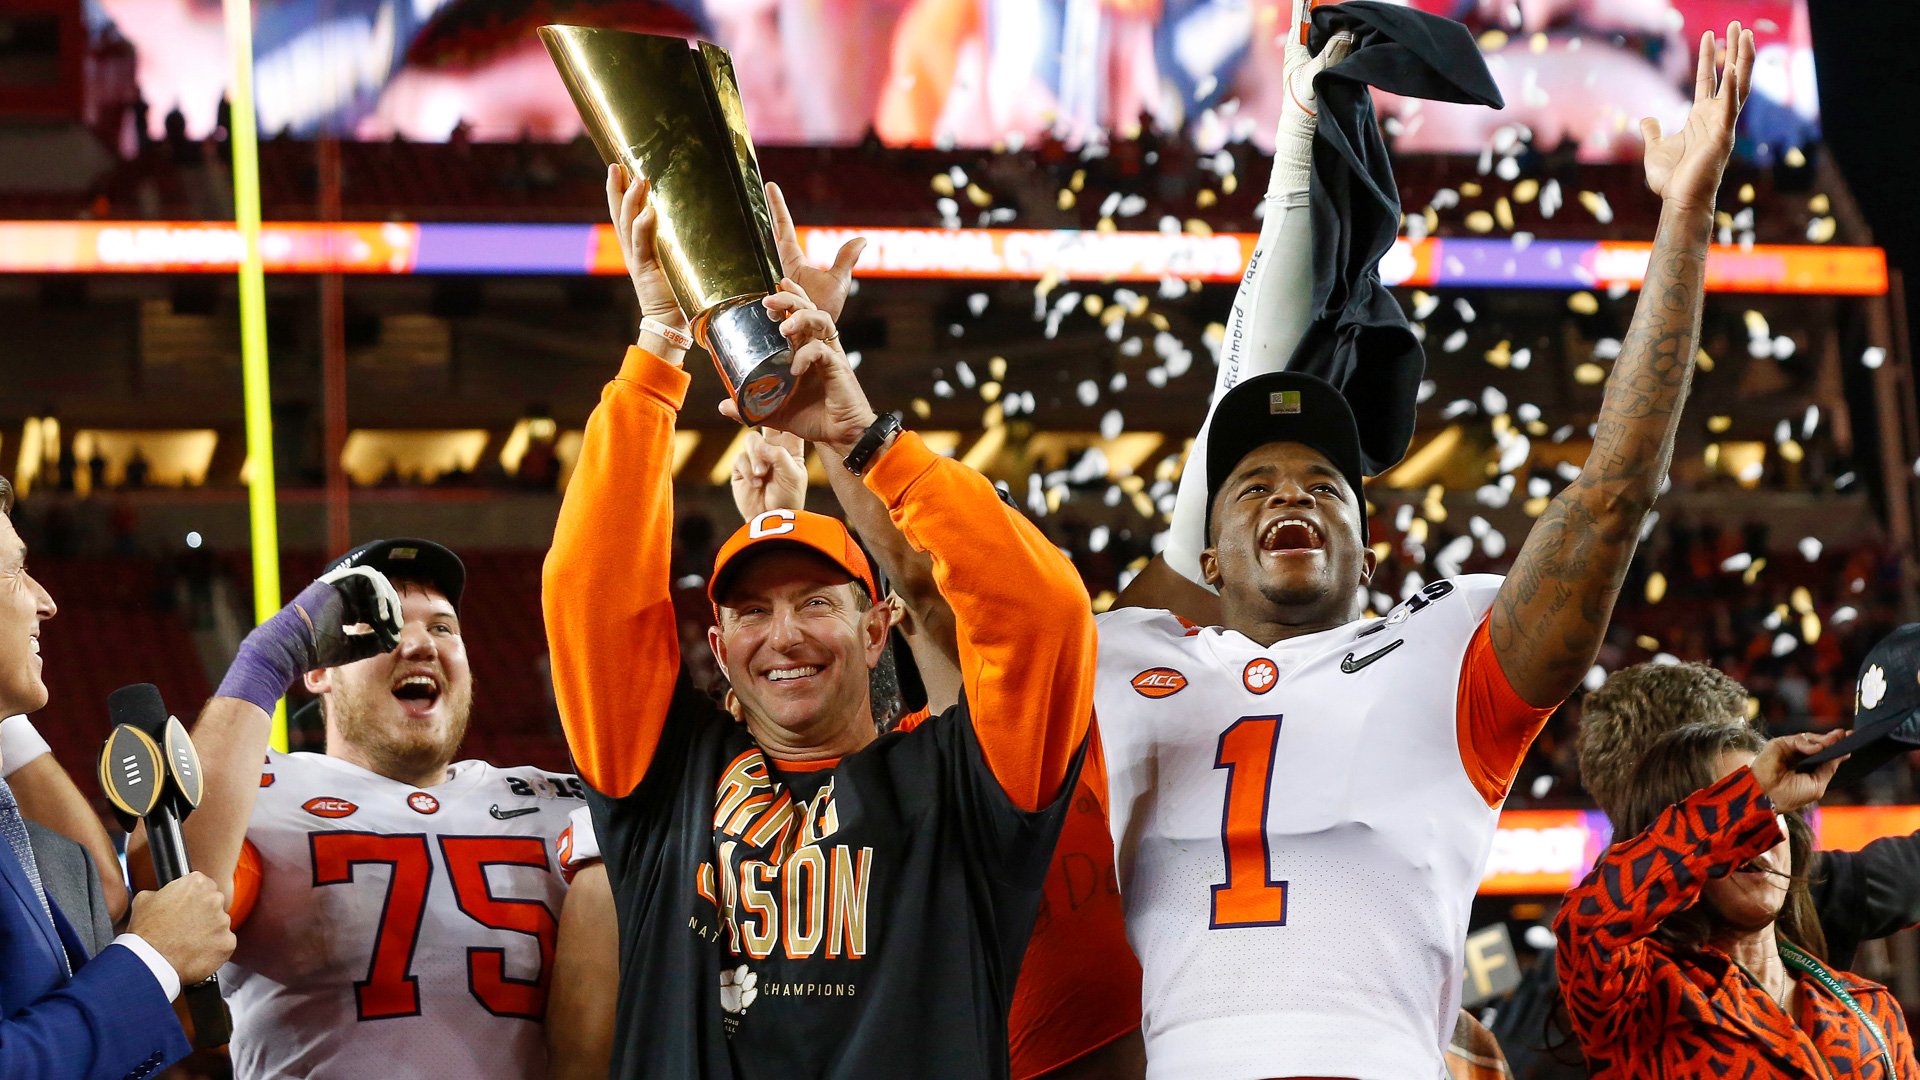 25 Teams Most Likely To Win the College Football Championship